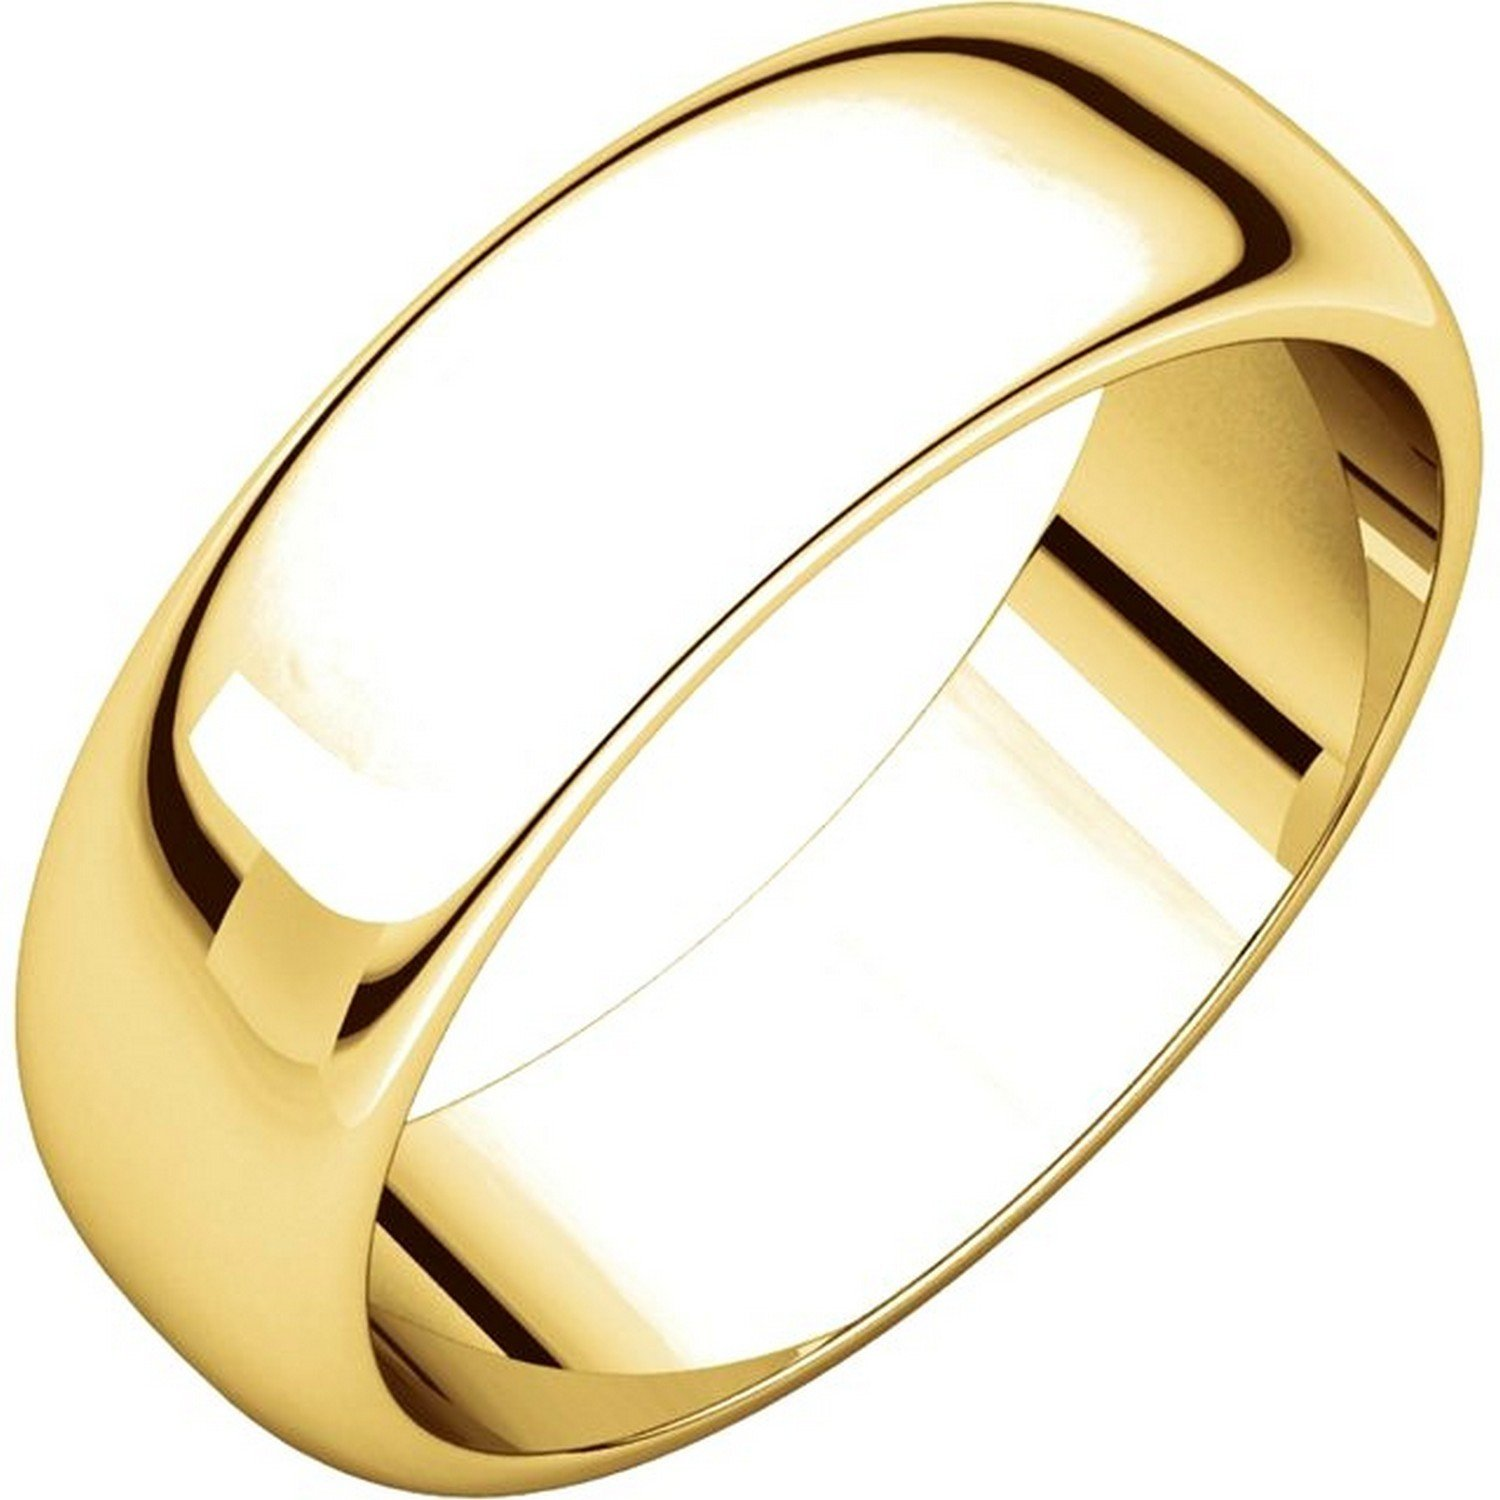 Men's and Women's 18k Yellow Gold, 6mm Wide, High Dome, Plain Wedding Band - Size 8.5